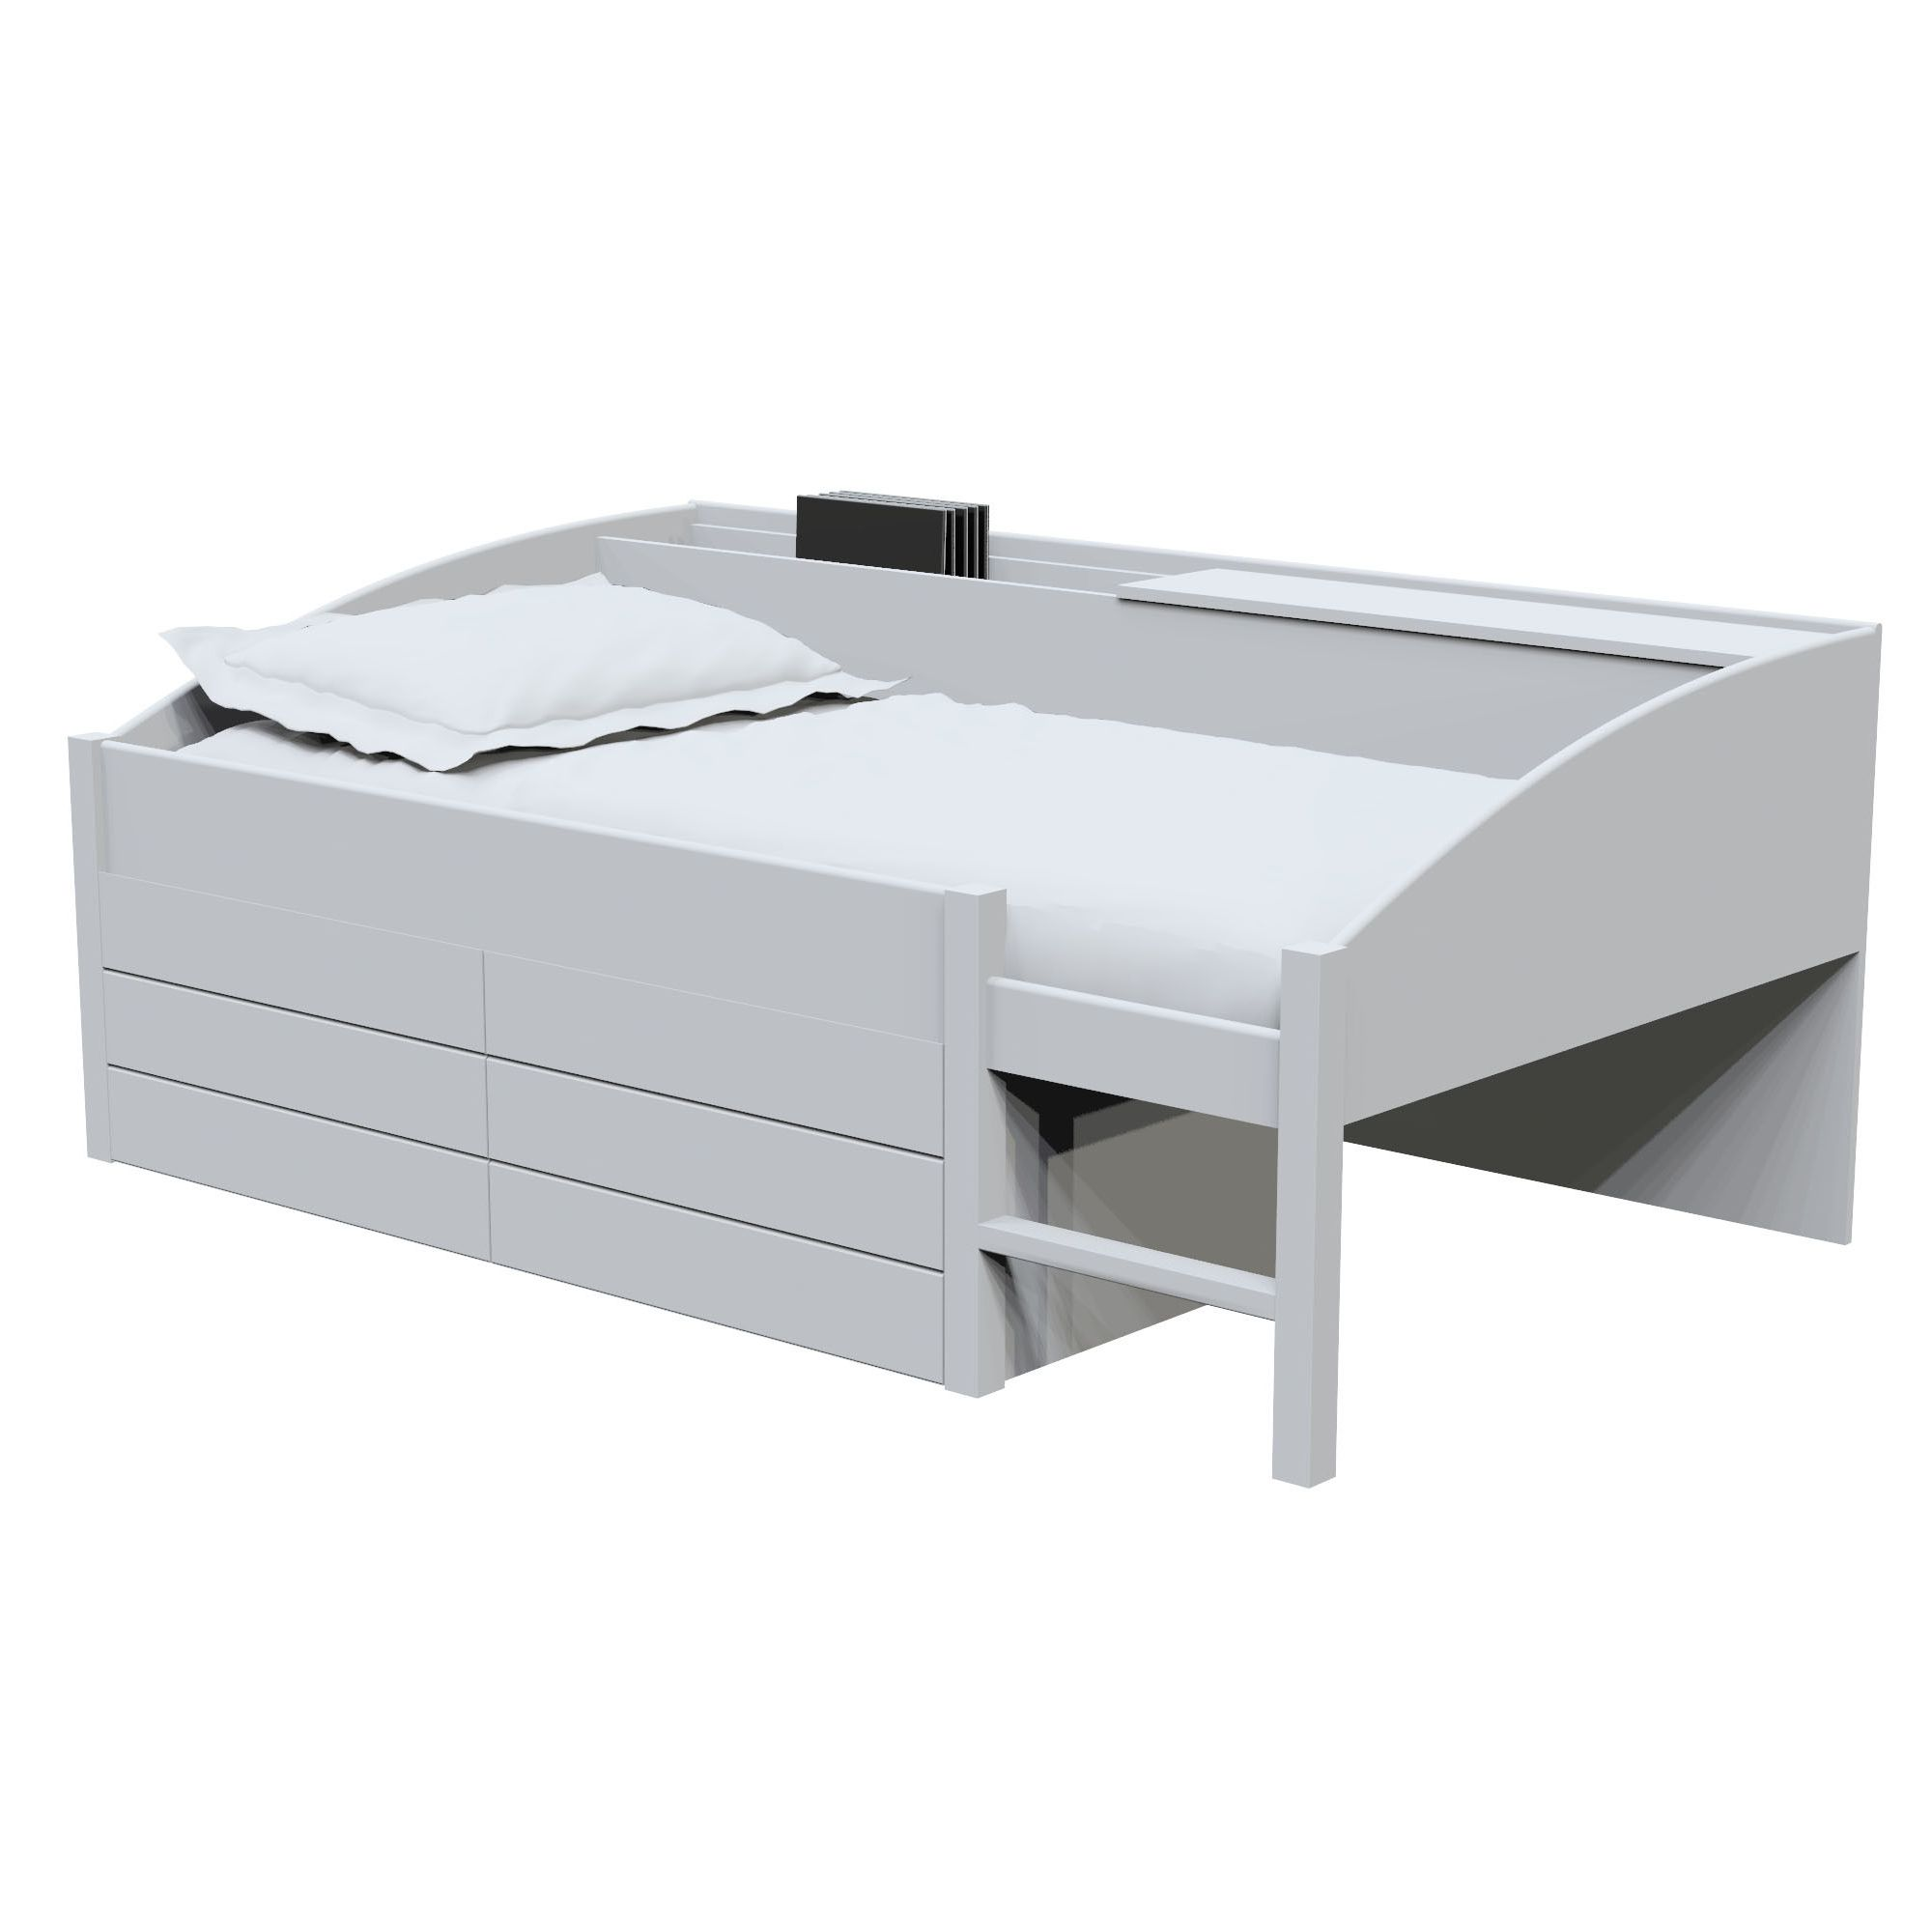 Altruna Moove Bed with Two Drawers - White at Tesco Direct